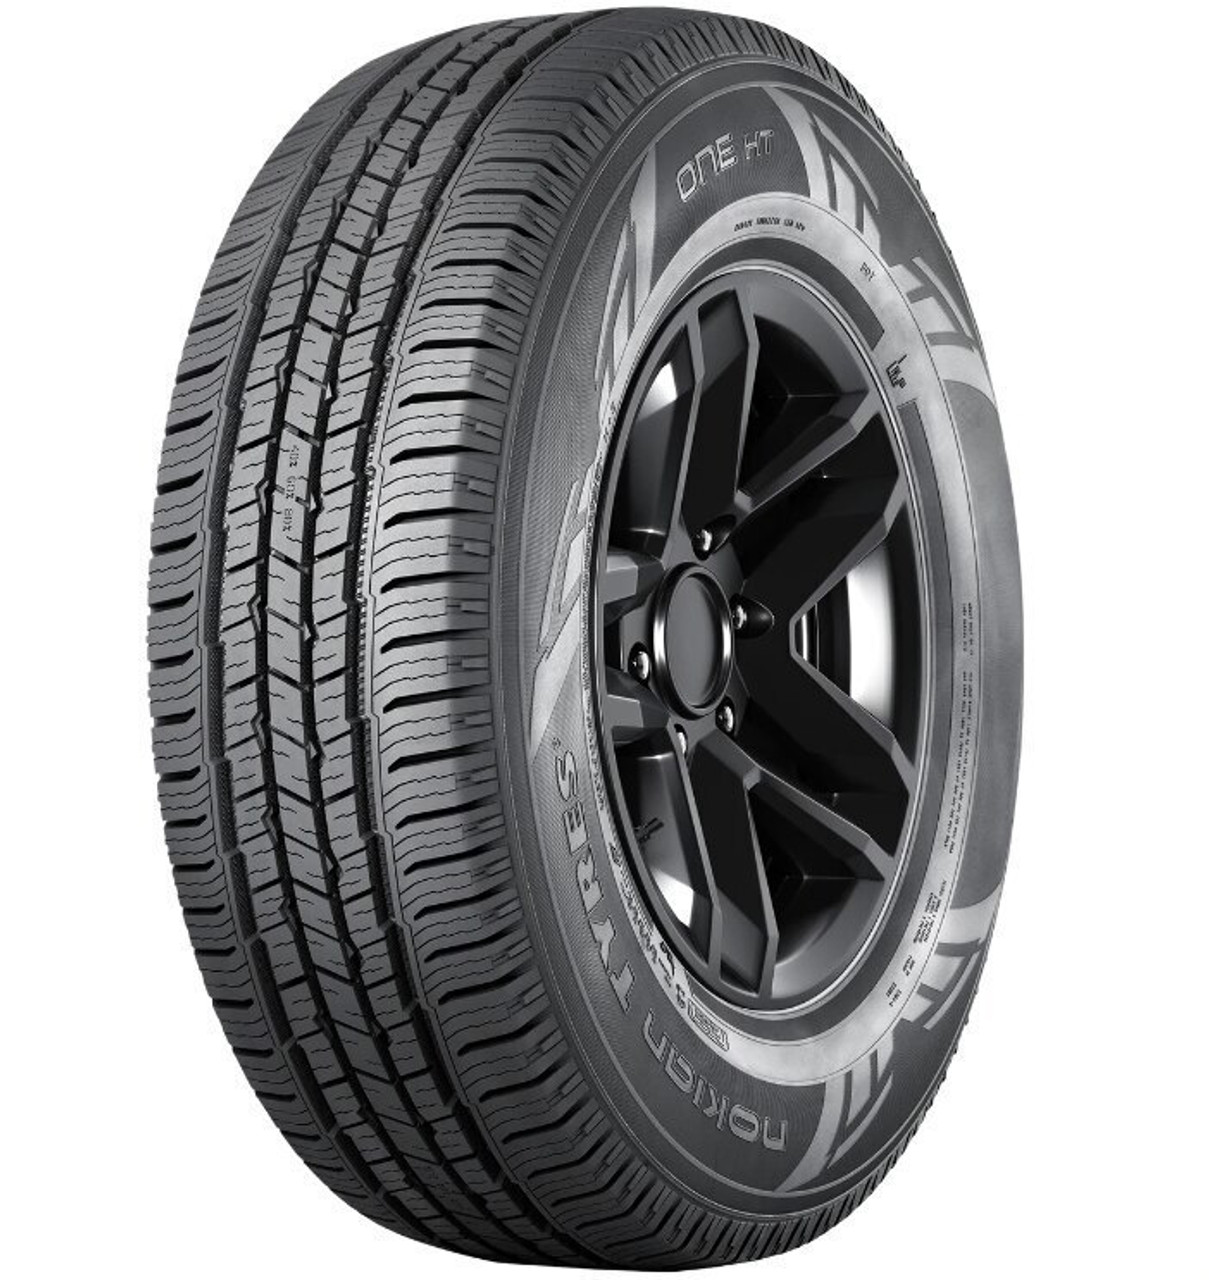 245/70R16 107T NOKIAN One HT